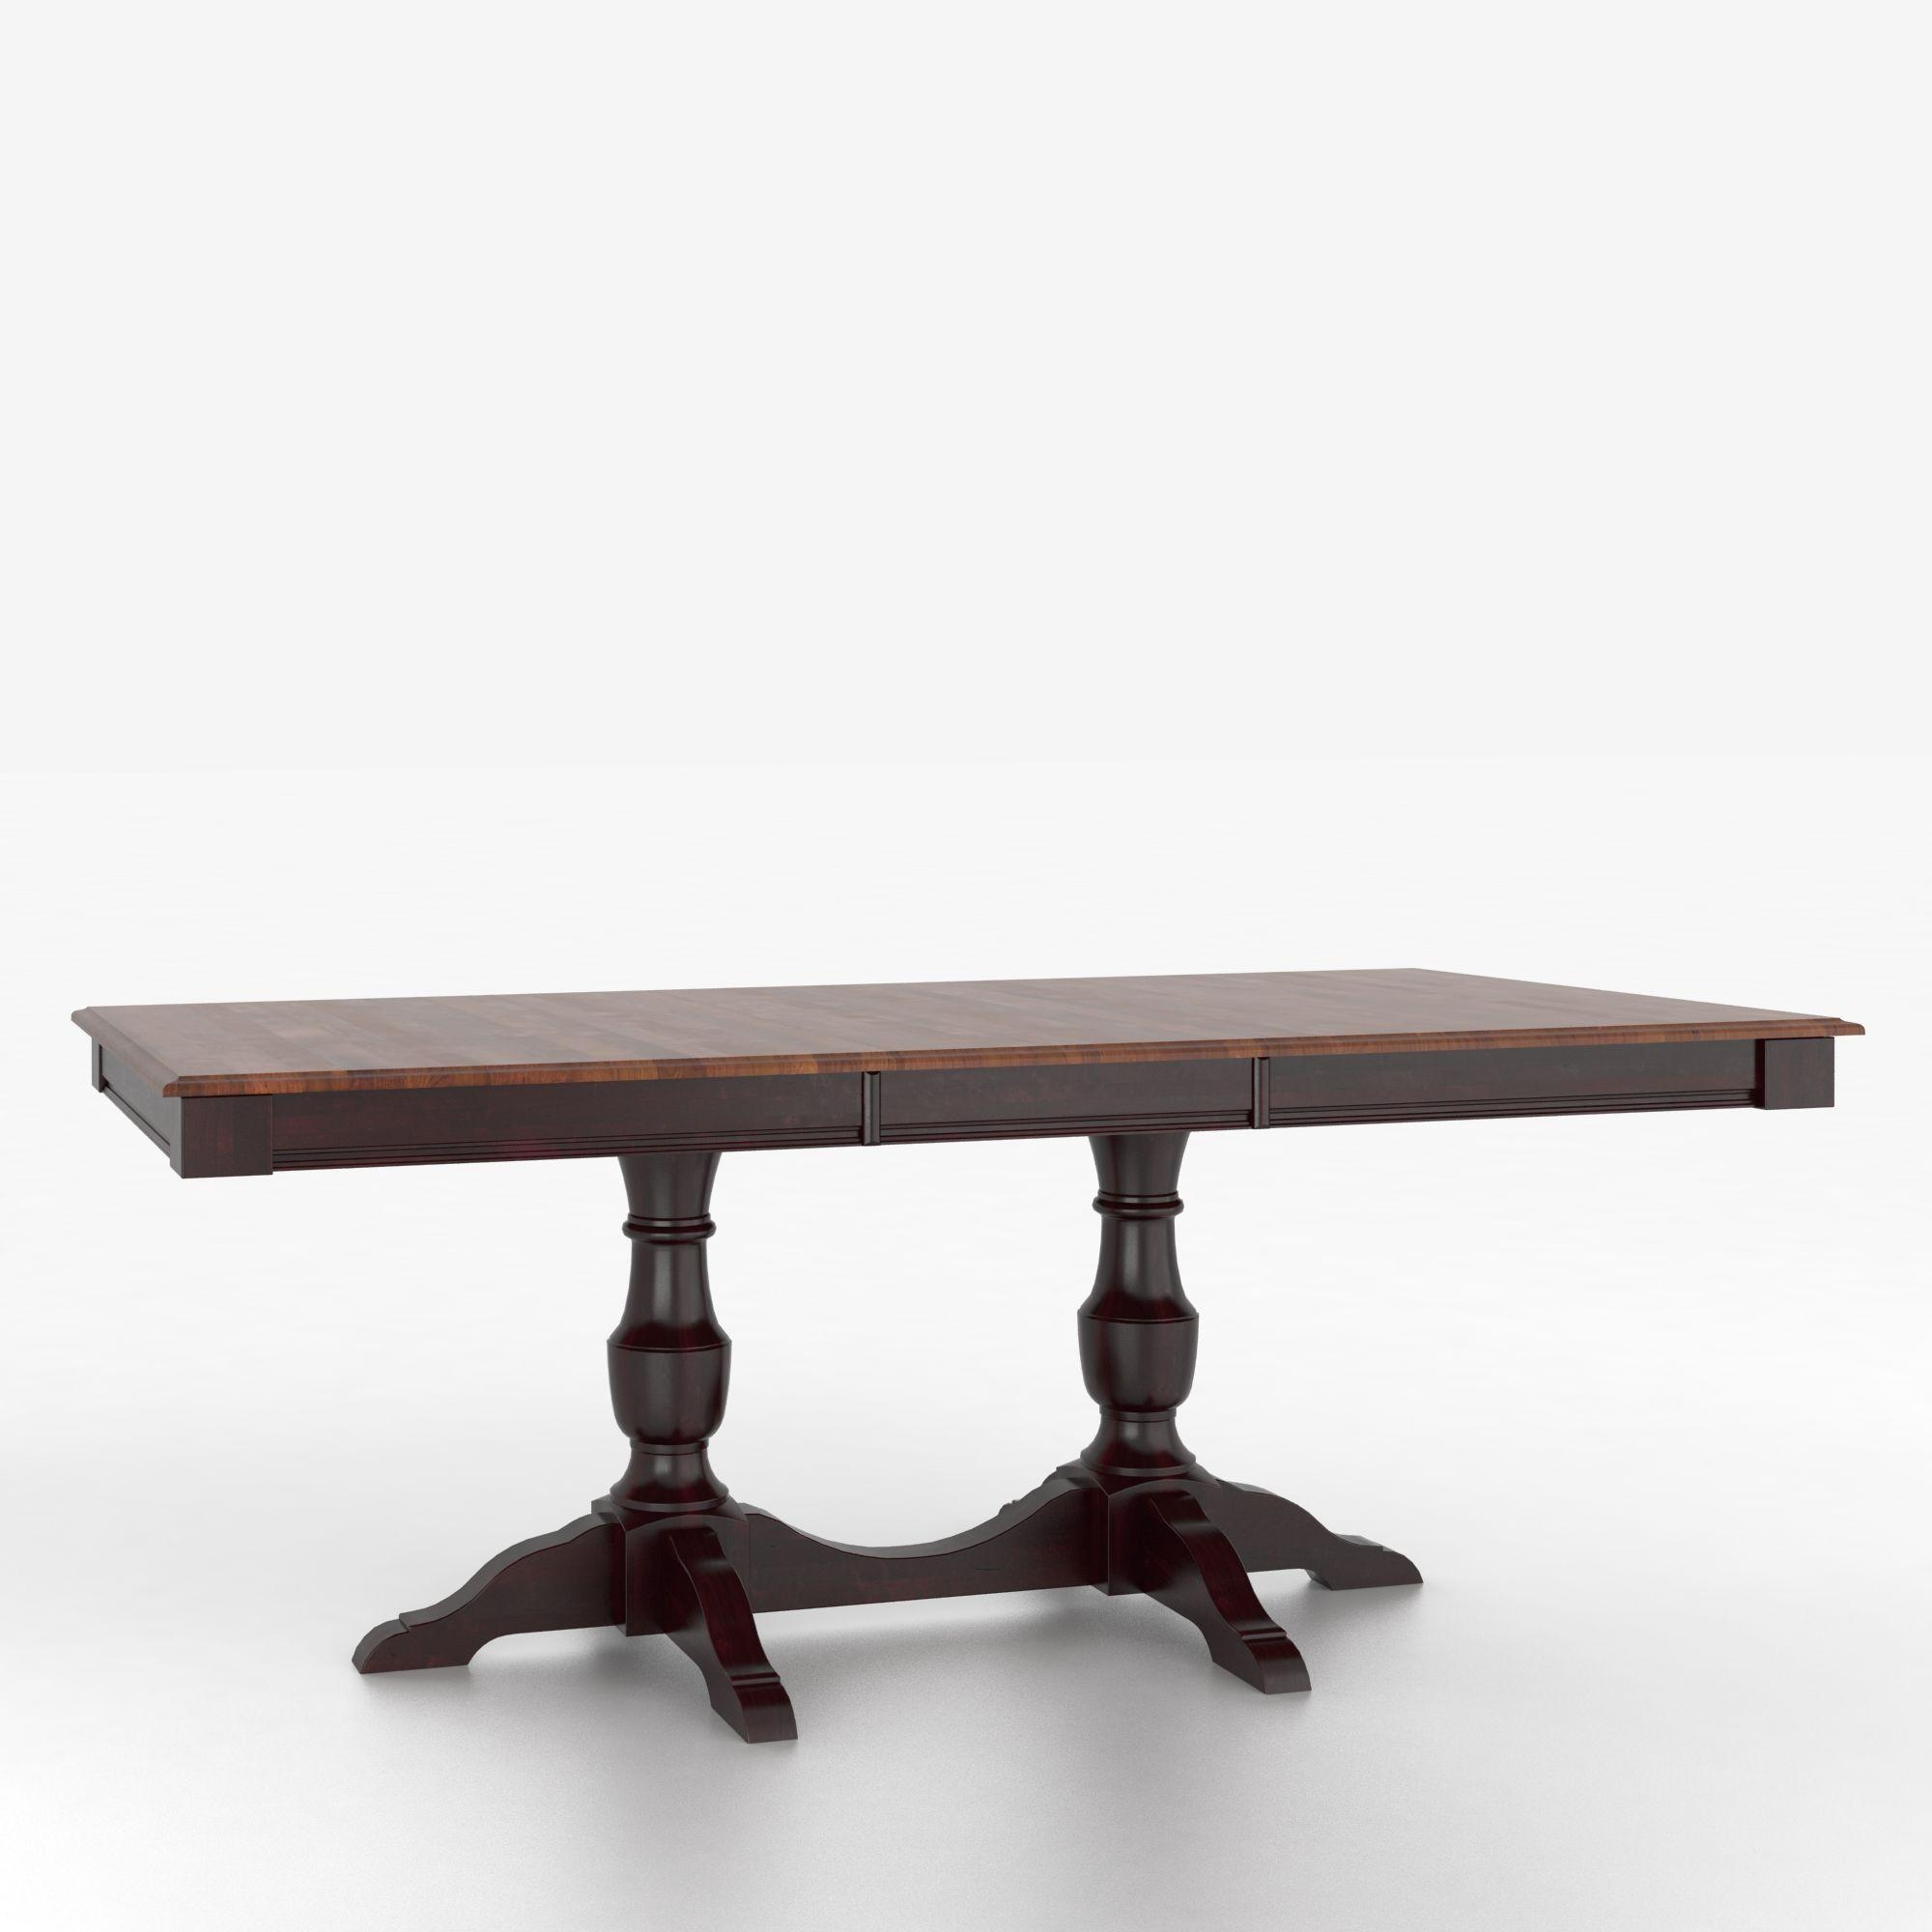 Canadel custom dining tables tre036682812mxpa1 customizable rectangular table with pedestal - Pedestal dining table rectangular ...